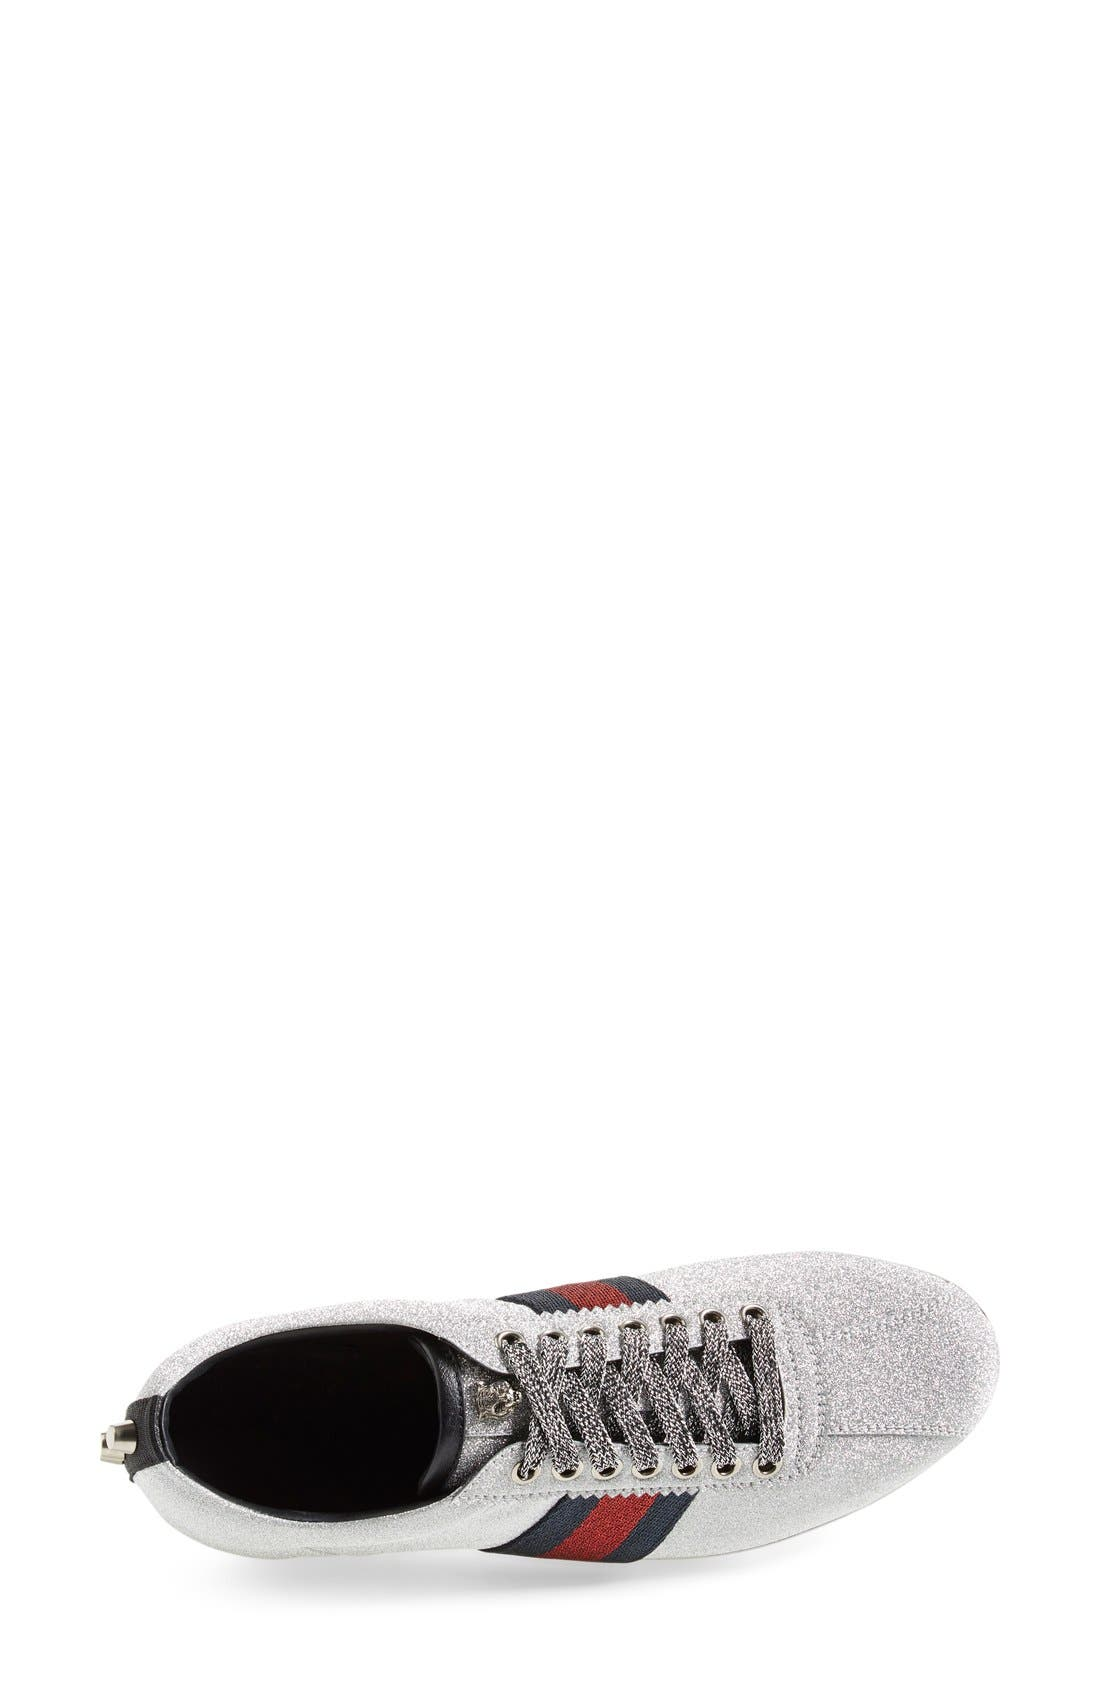 Alternate Image 3  - Gucci Lace-Up Sneaker (Women)